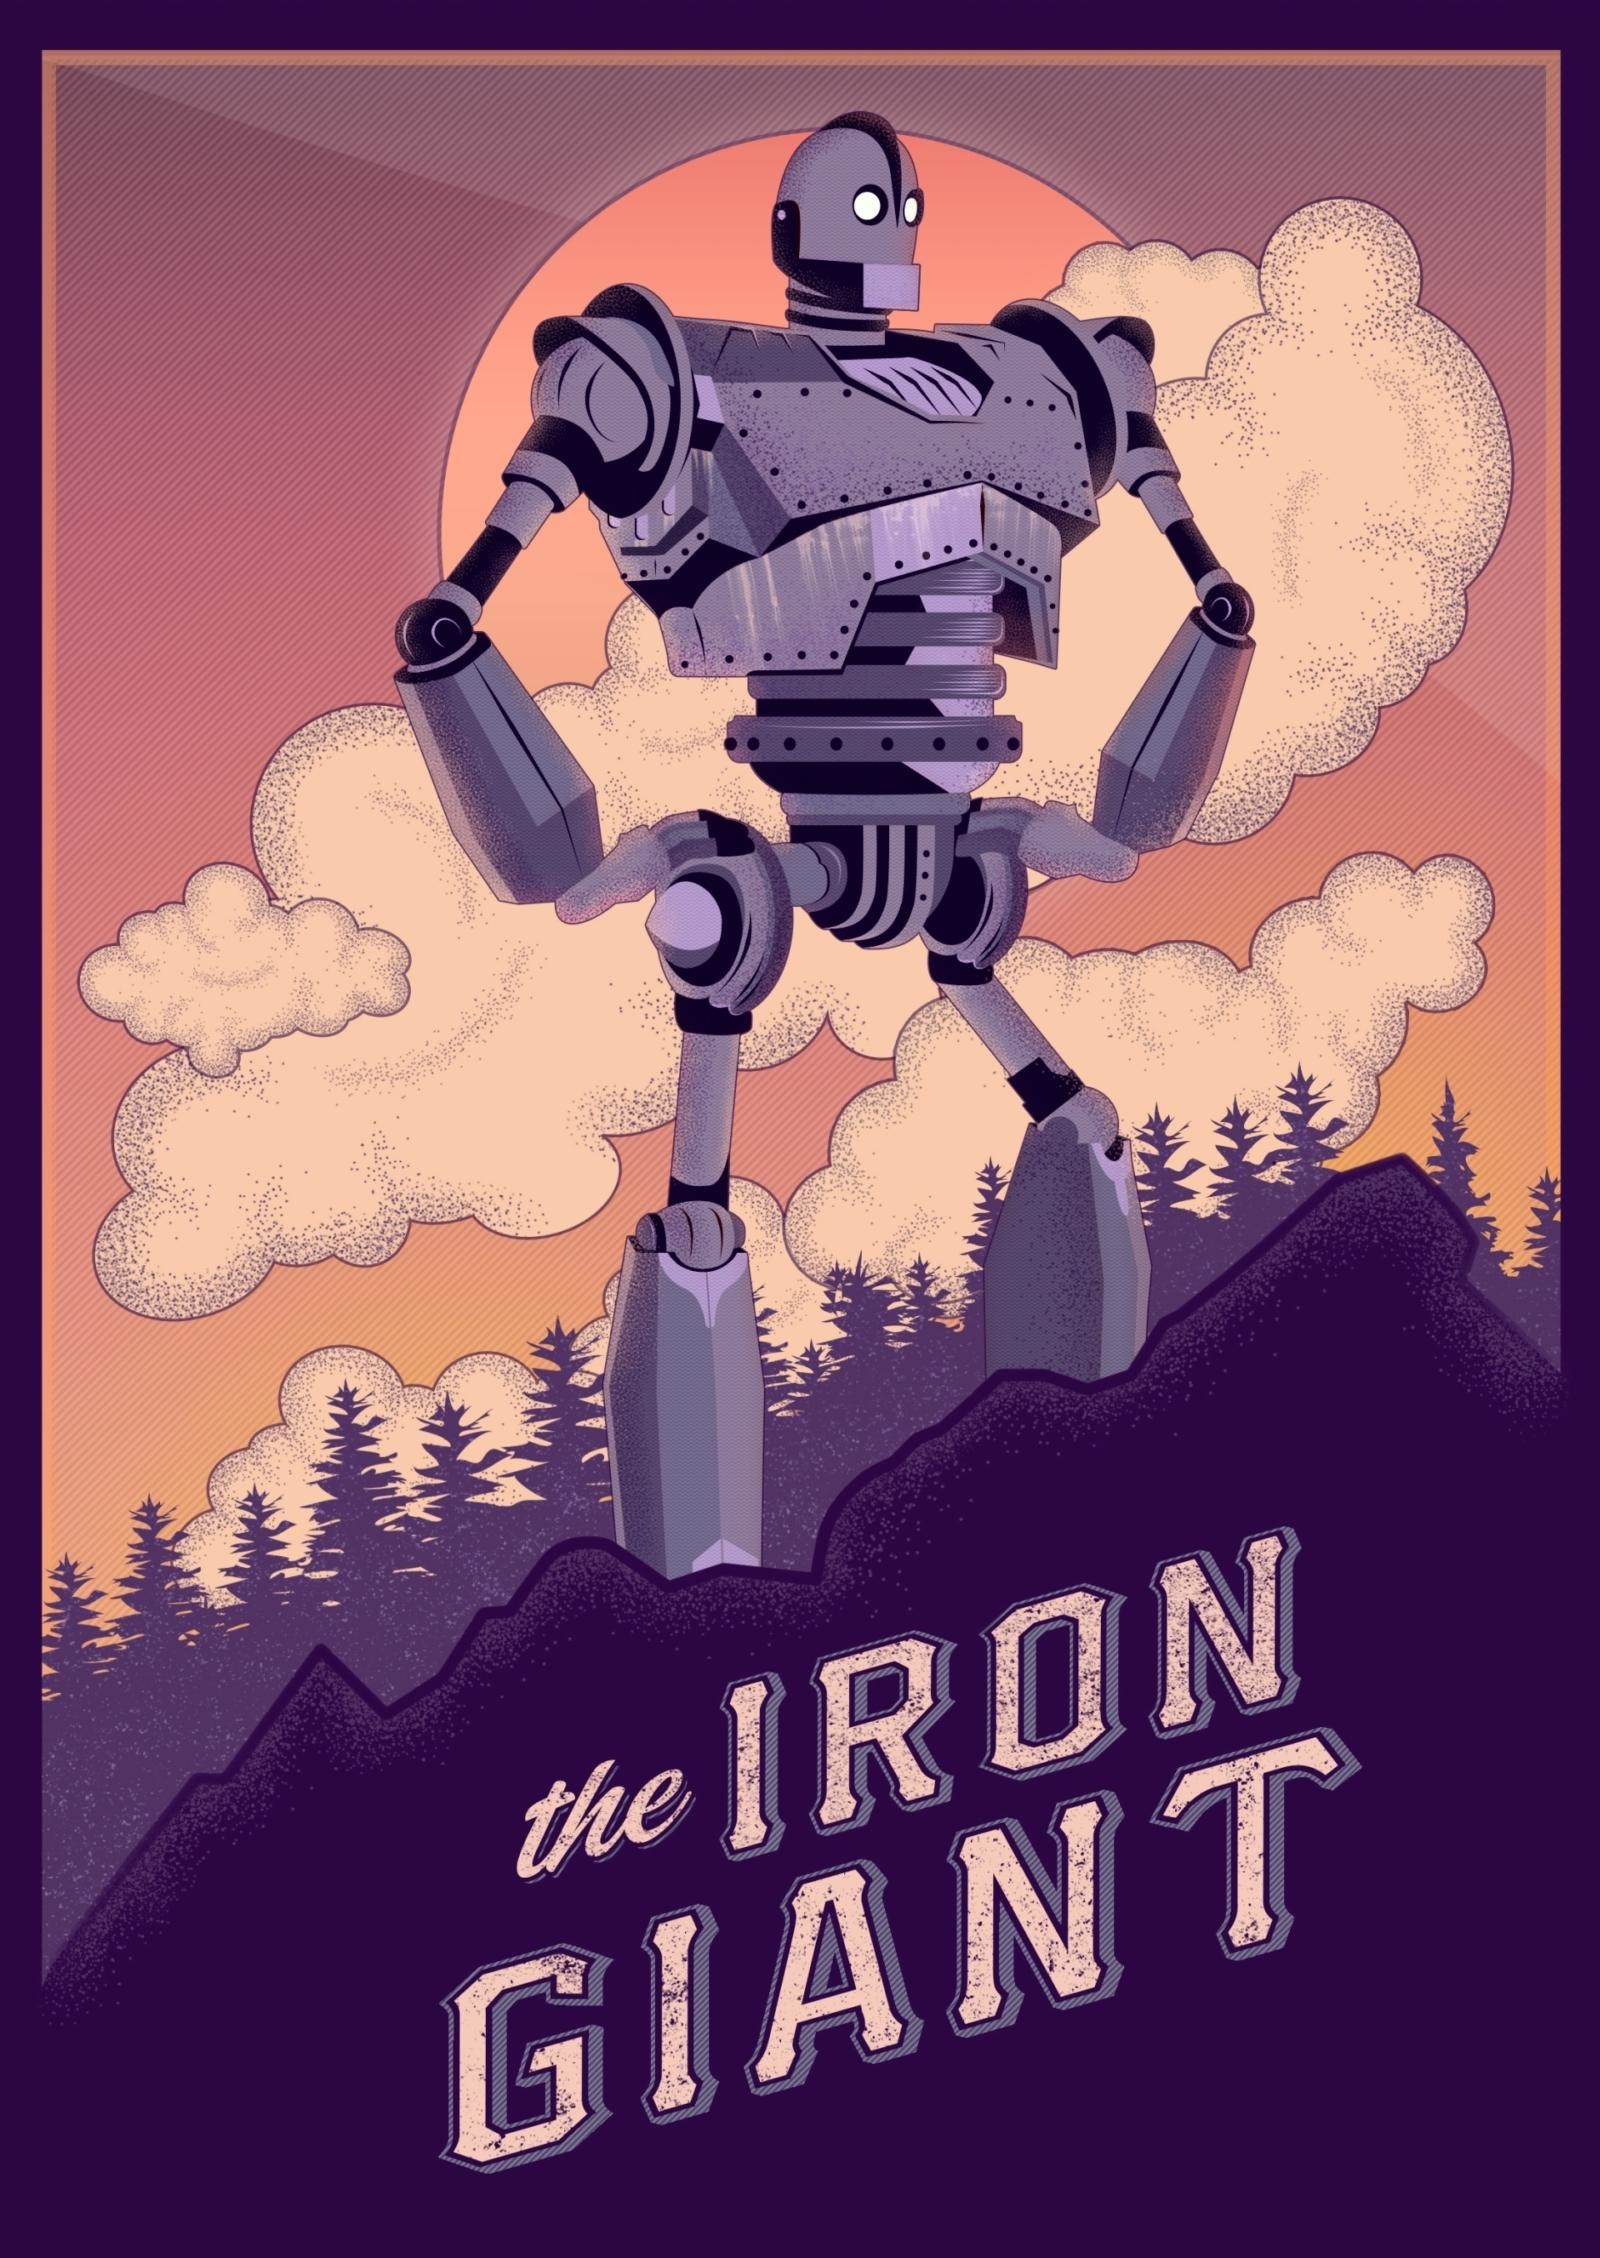 The Iron Giant (1999) HD Wallpaper From Gallsource.com